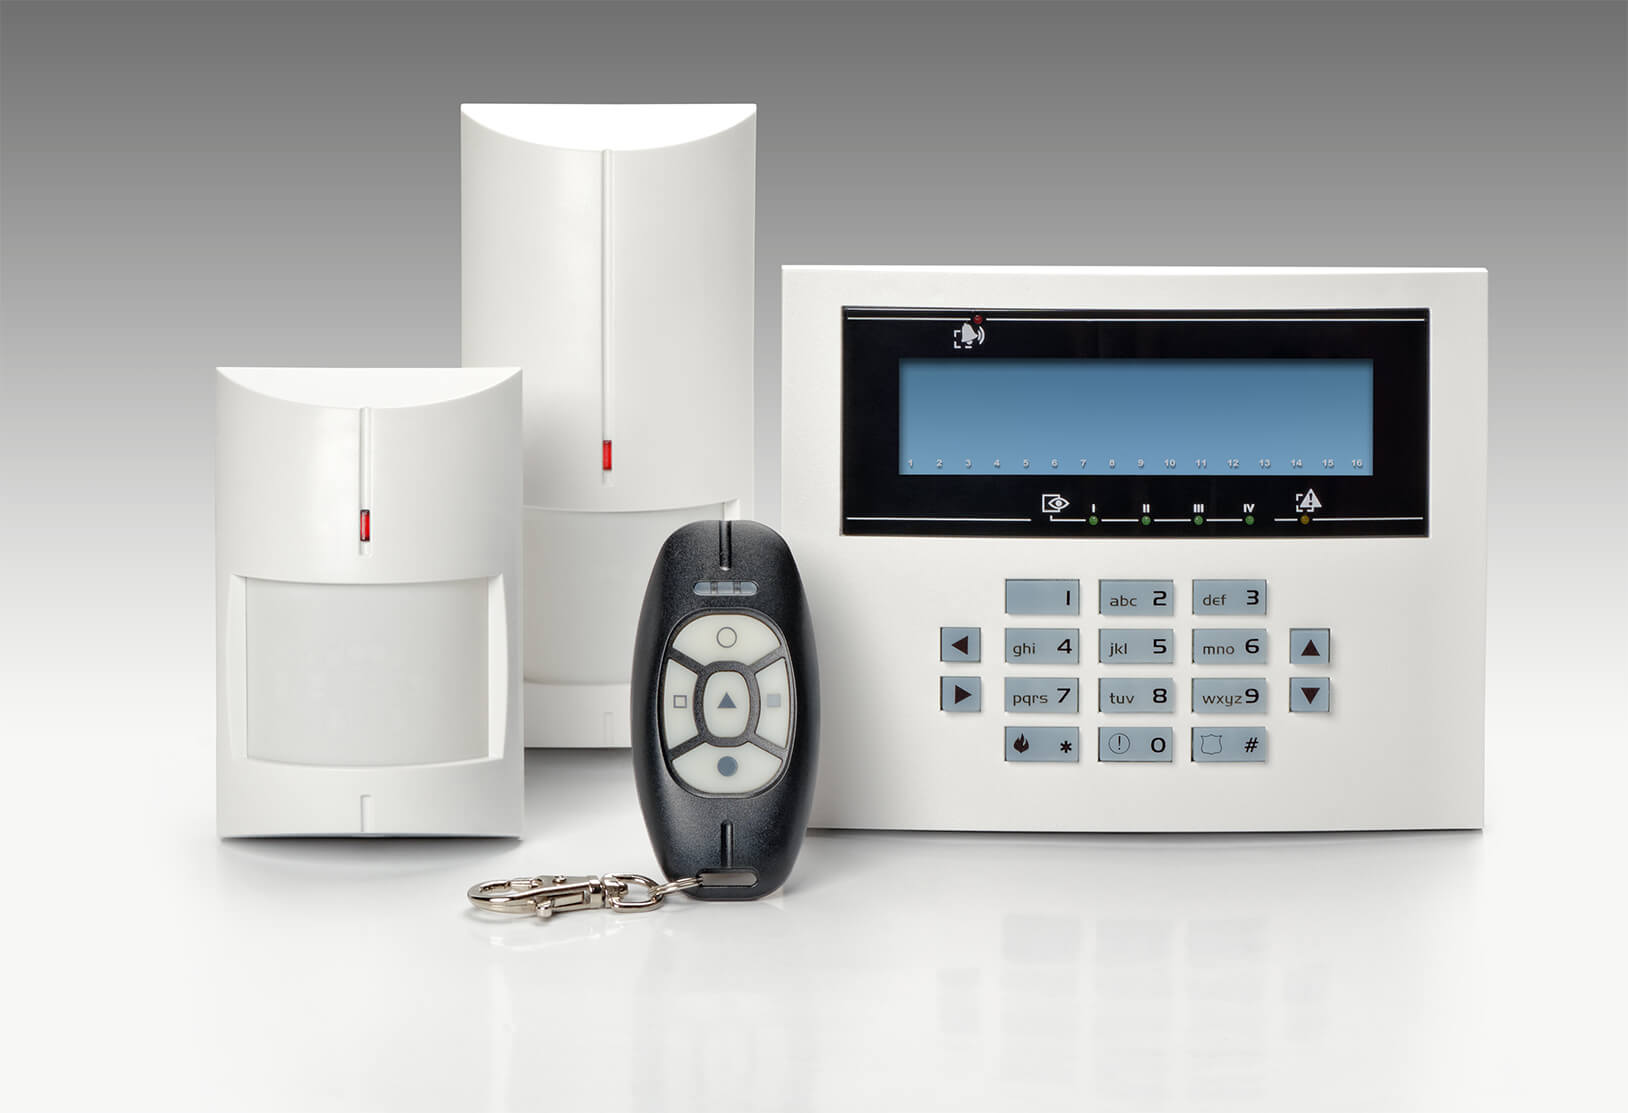 Business & Residential NSI / NACOSS Approved Burglar Alarms In Kensington W10 - Local Kensington W10 security company.Call 02078872244 - Dedicated to Safety & Security. Companies, shops and homes ..